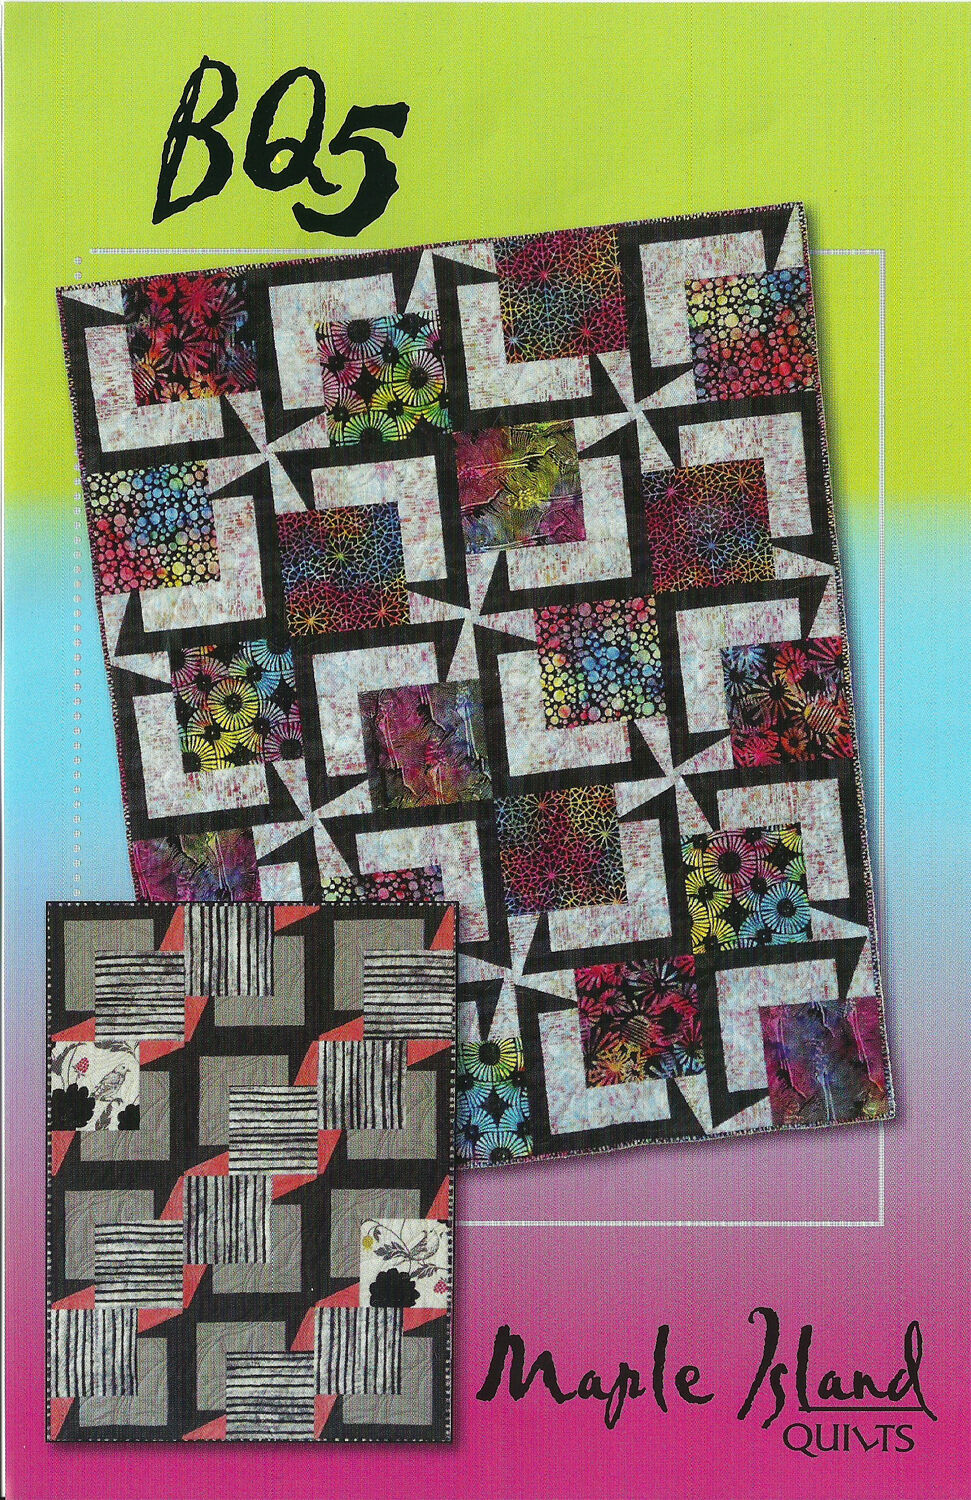 BQ 5, Quilt Pattern Maple Island Quilts, DIY Quilting Sewing